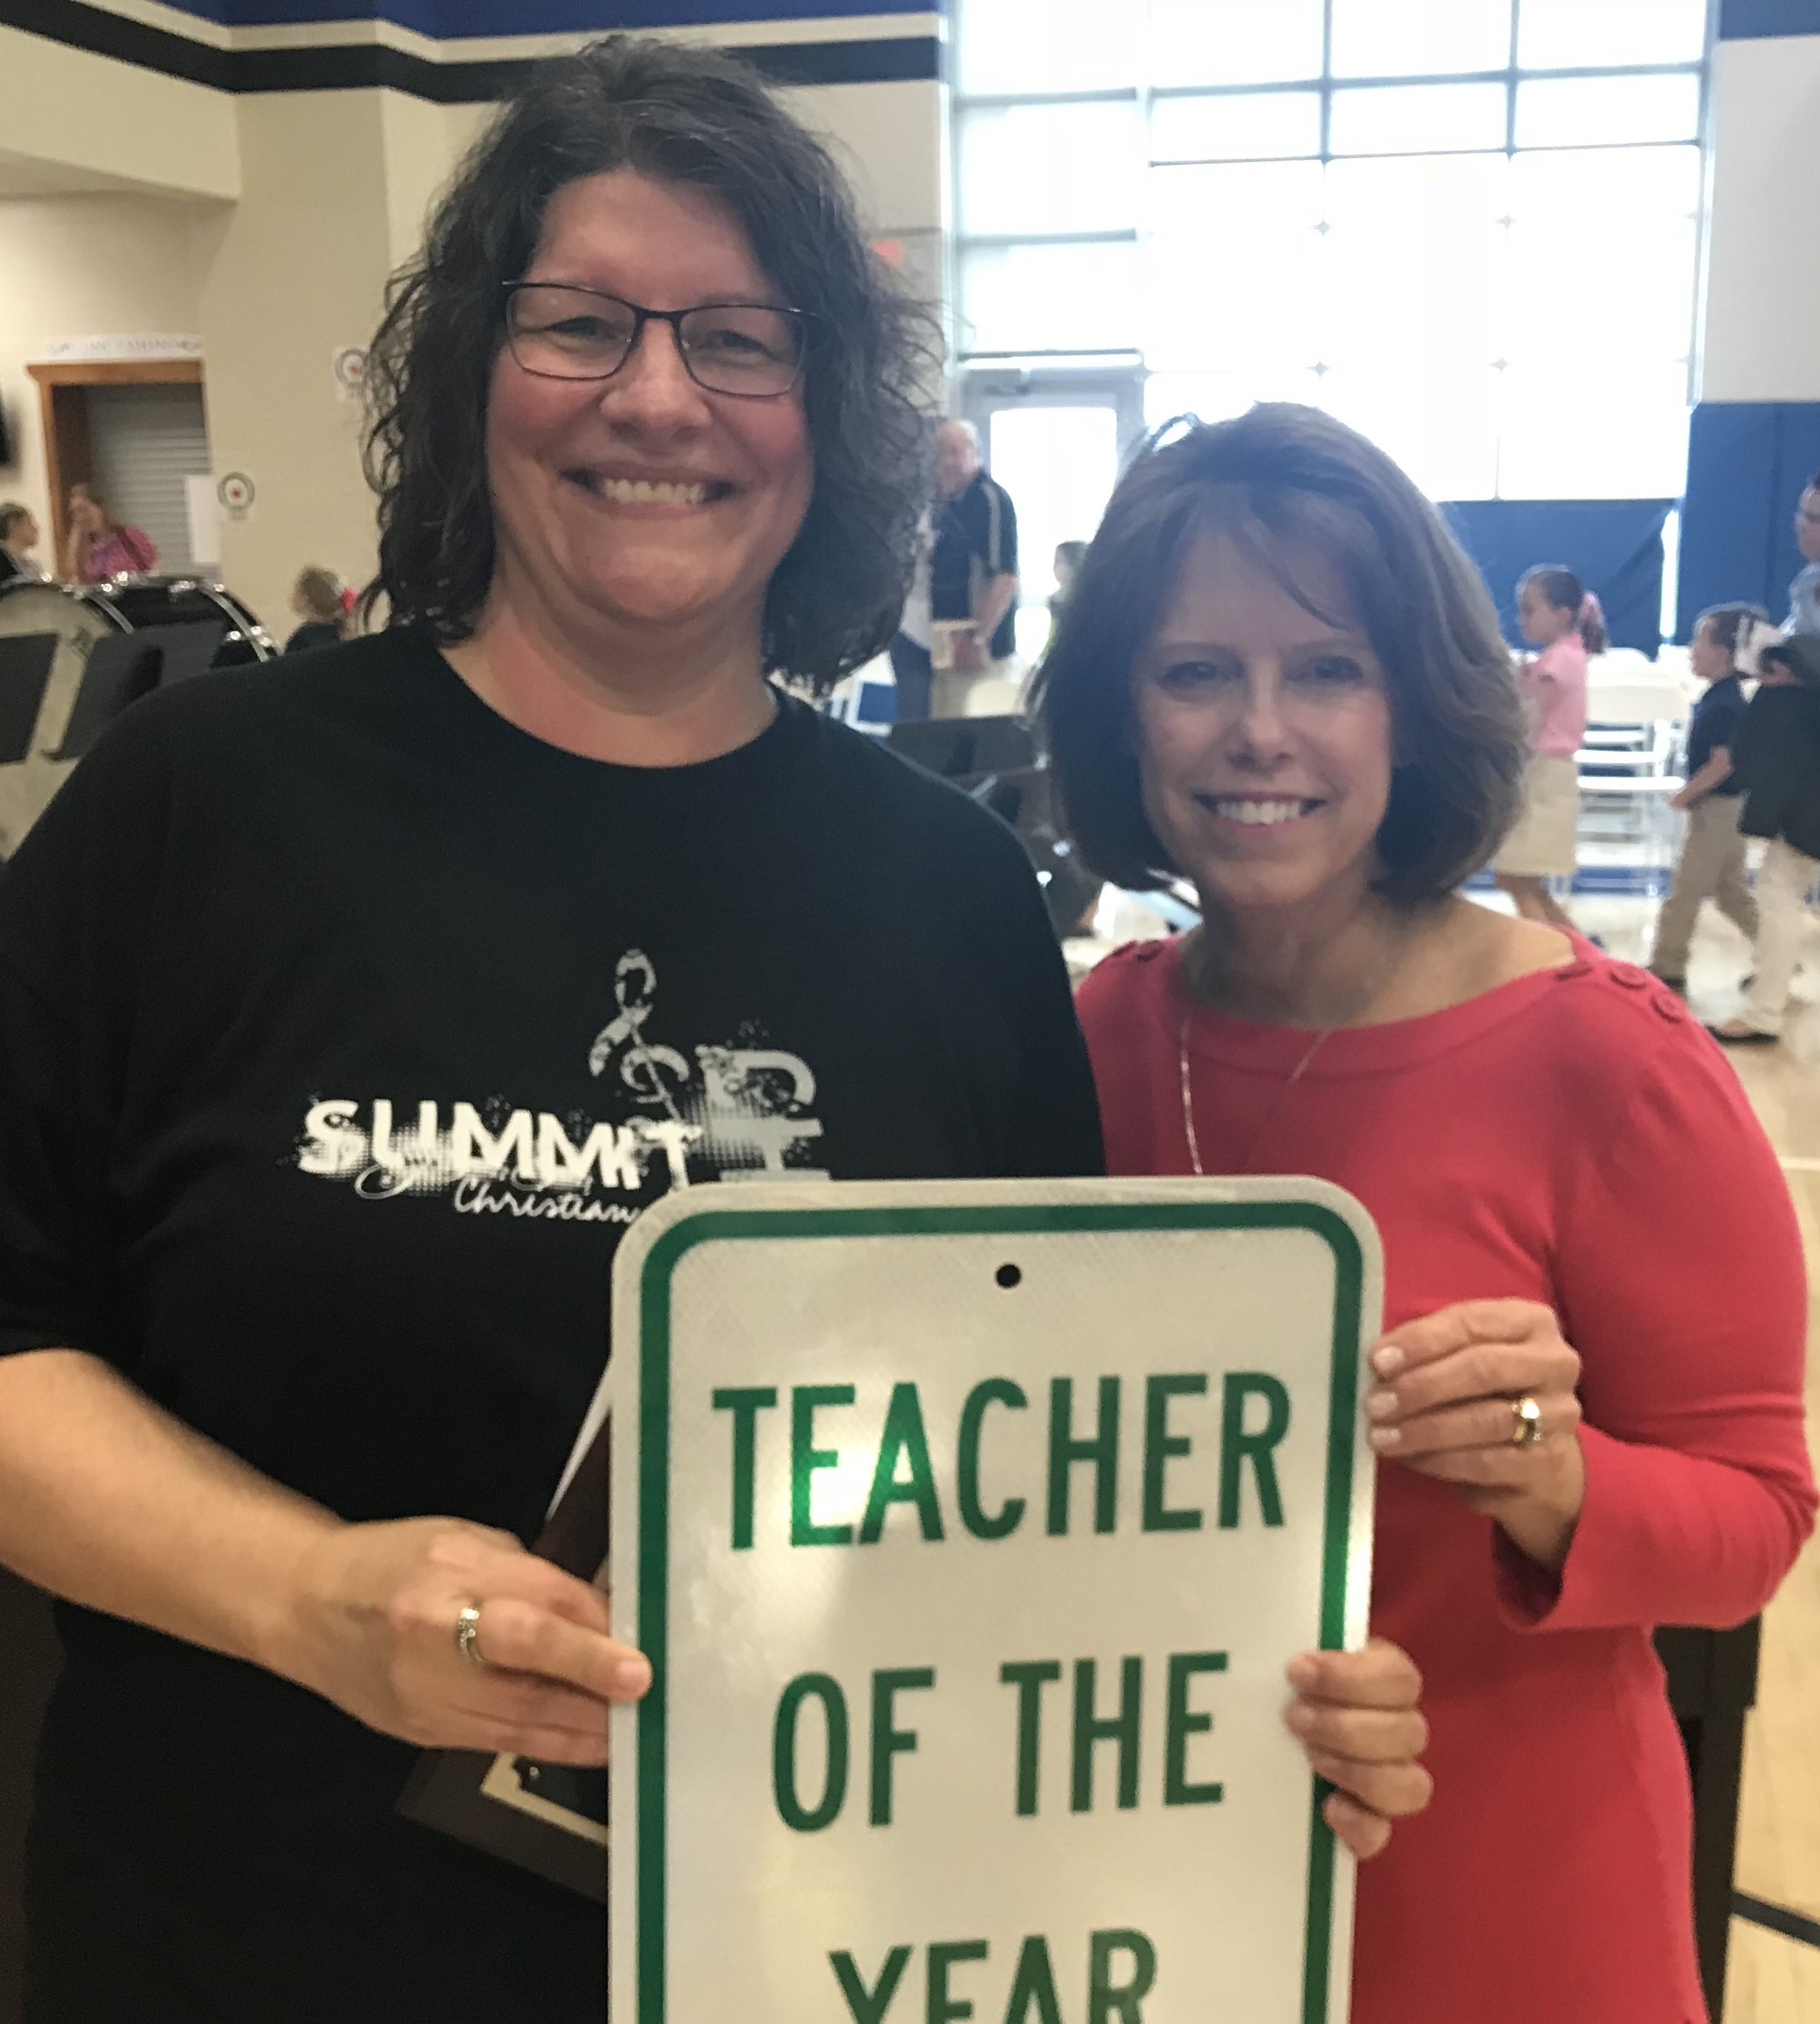 SCA 2018 Teacher of the Year, Secondary Vocal Music Teacher Trissa Lucht, pictured with SCA Head of School Linda Harrelson.